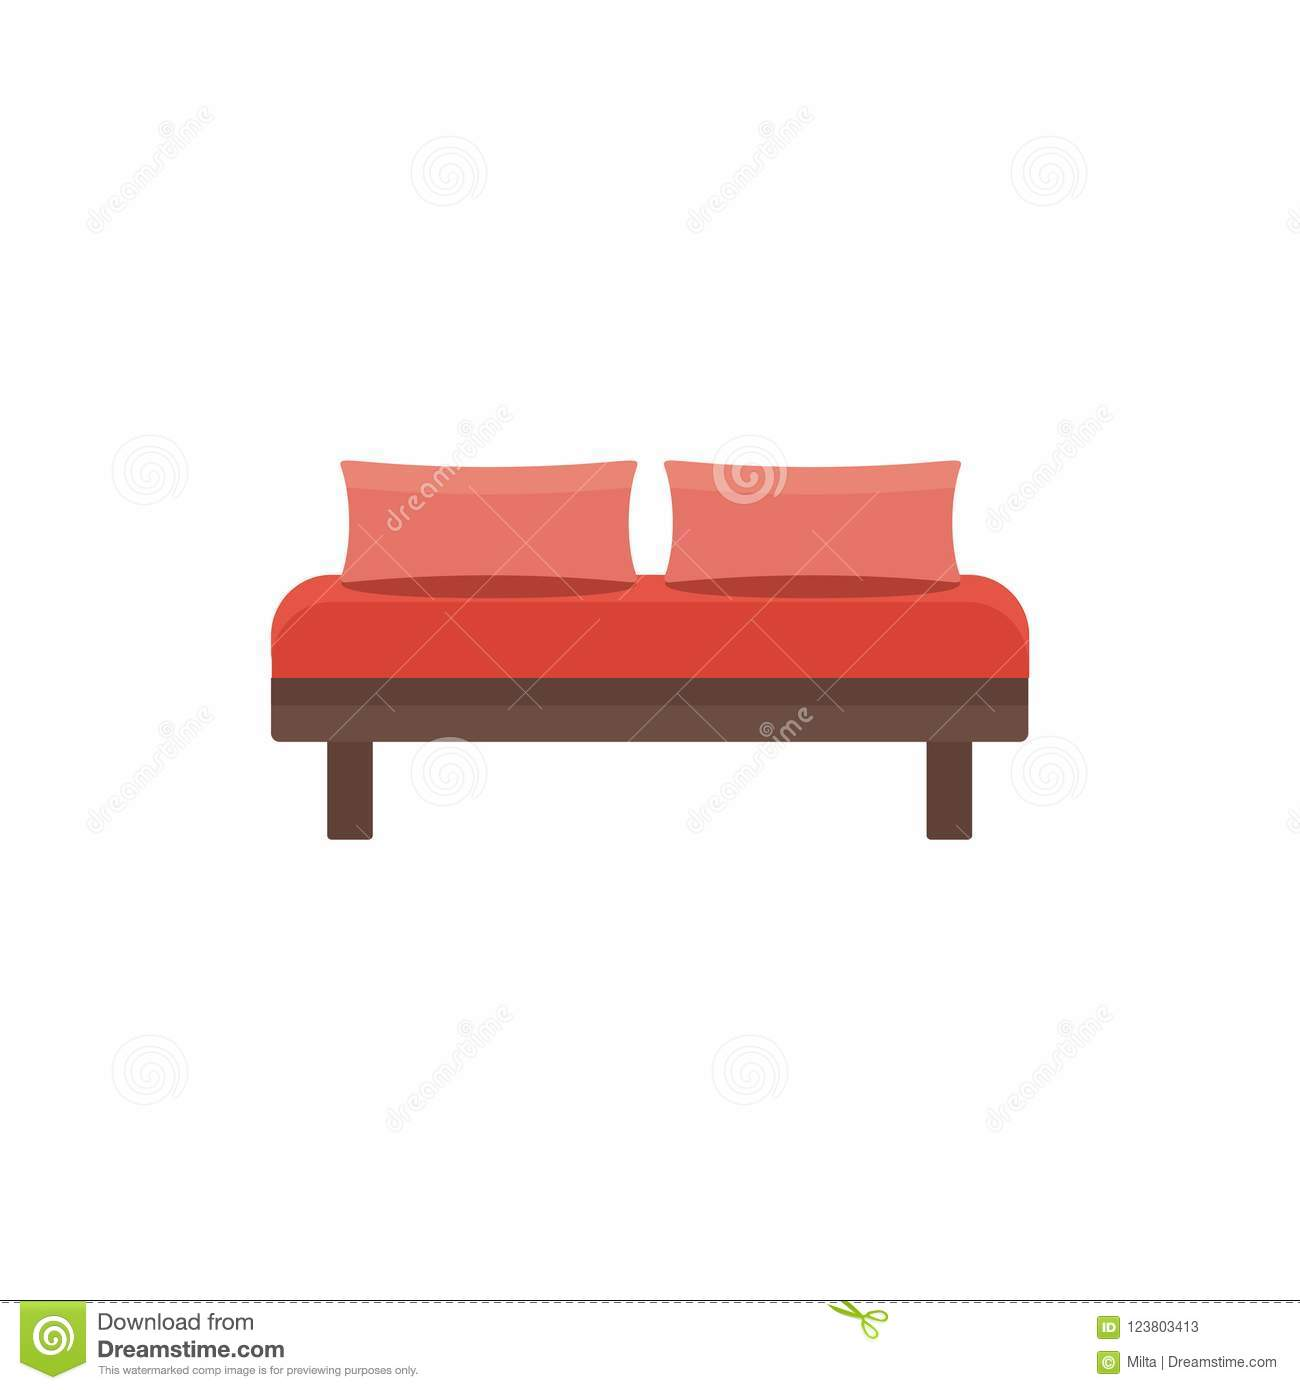 Download Red Daybed With 2 Pillows. Comfortable Sofa. Vector Illustration  Stock Vector   Illustration